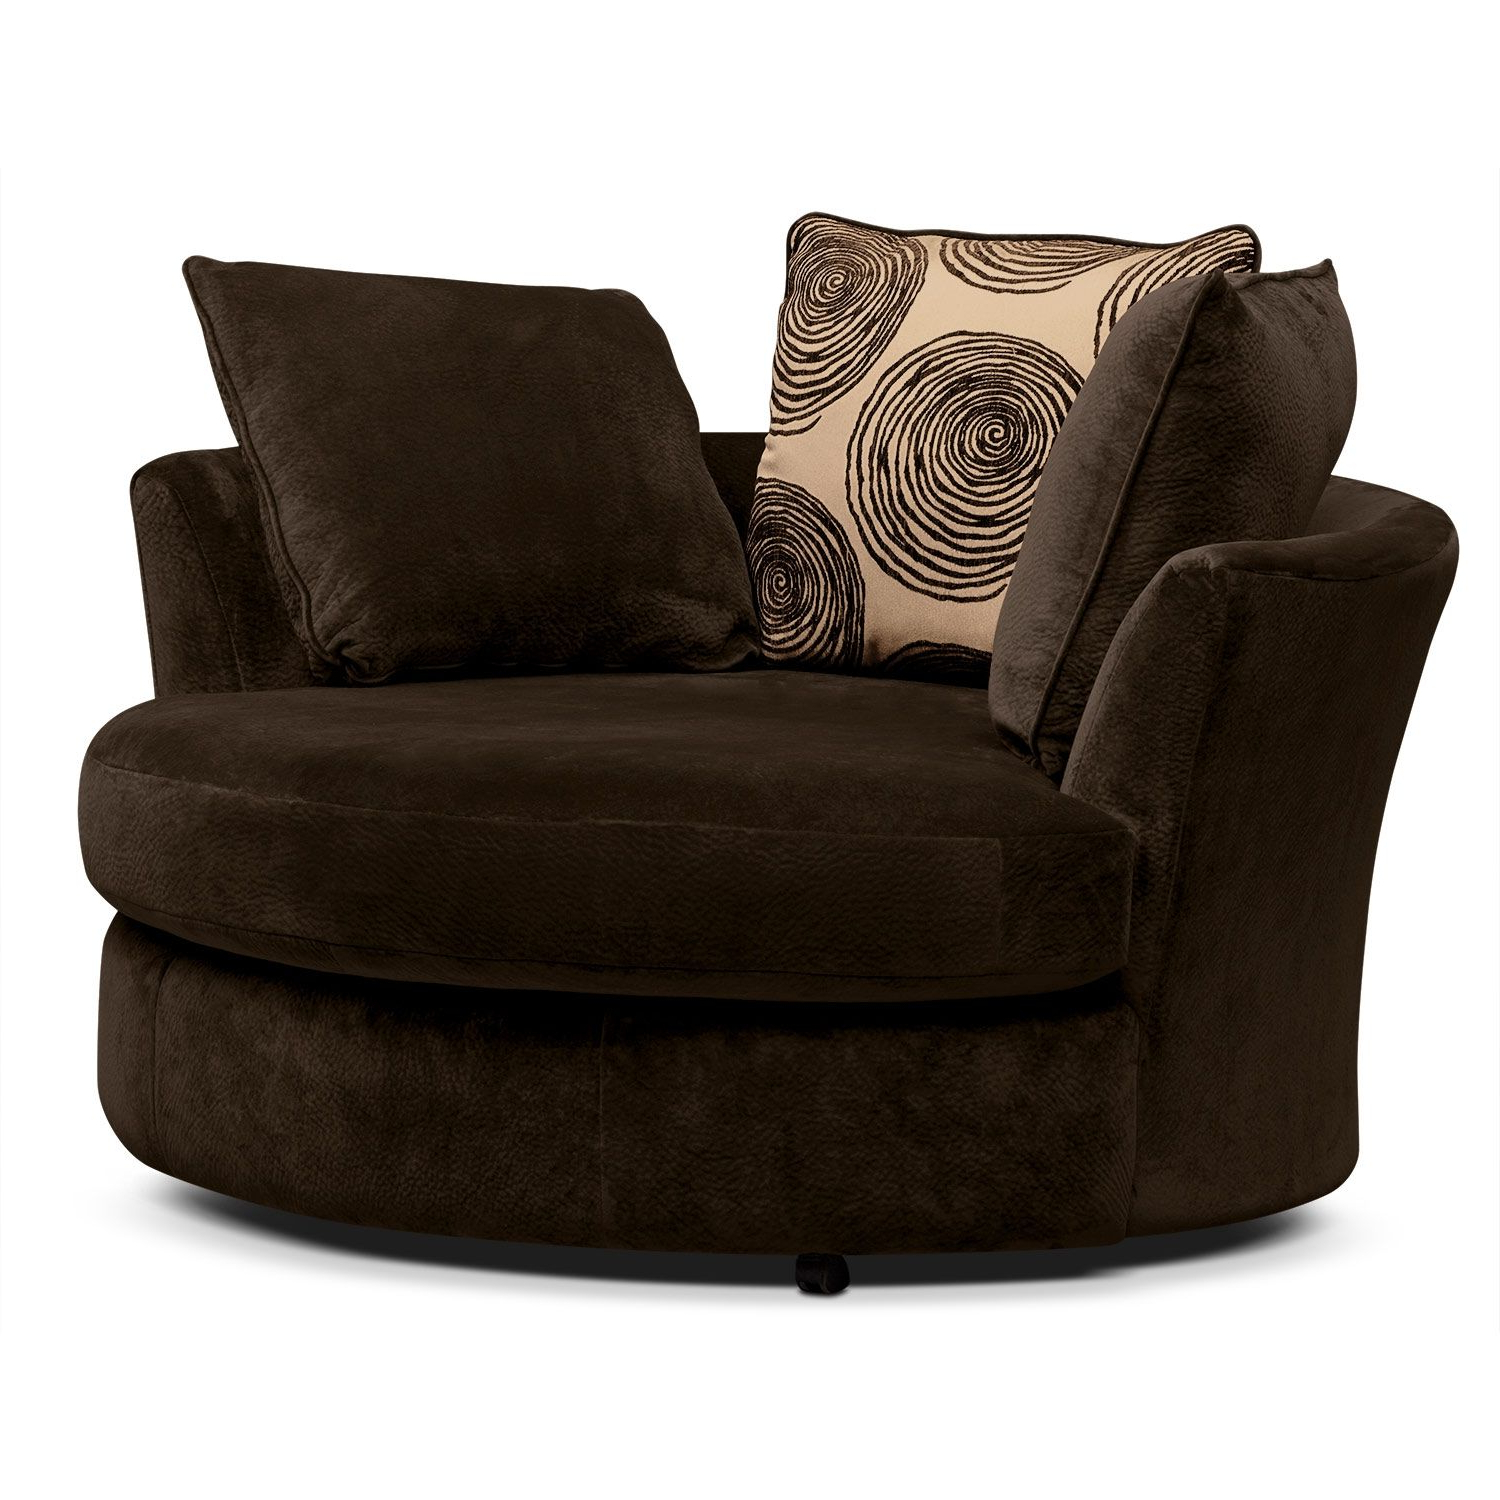 Home Decor Within Round Sofa Chairs (Gallery 12 of 20)